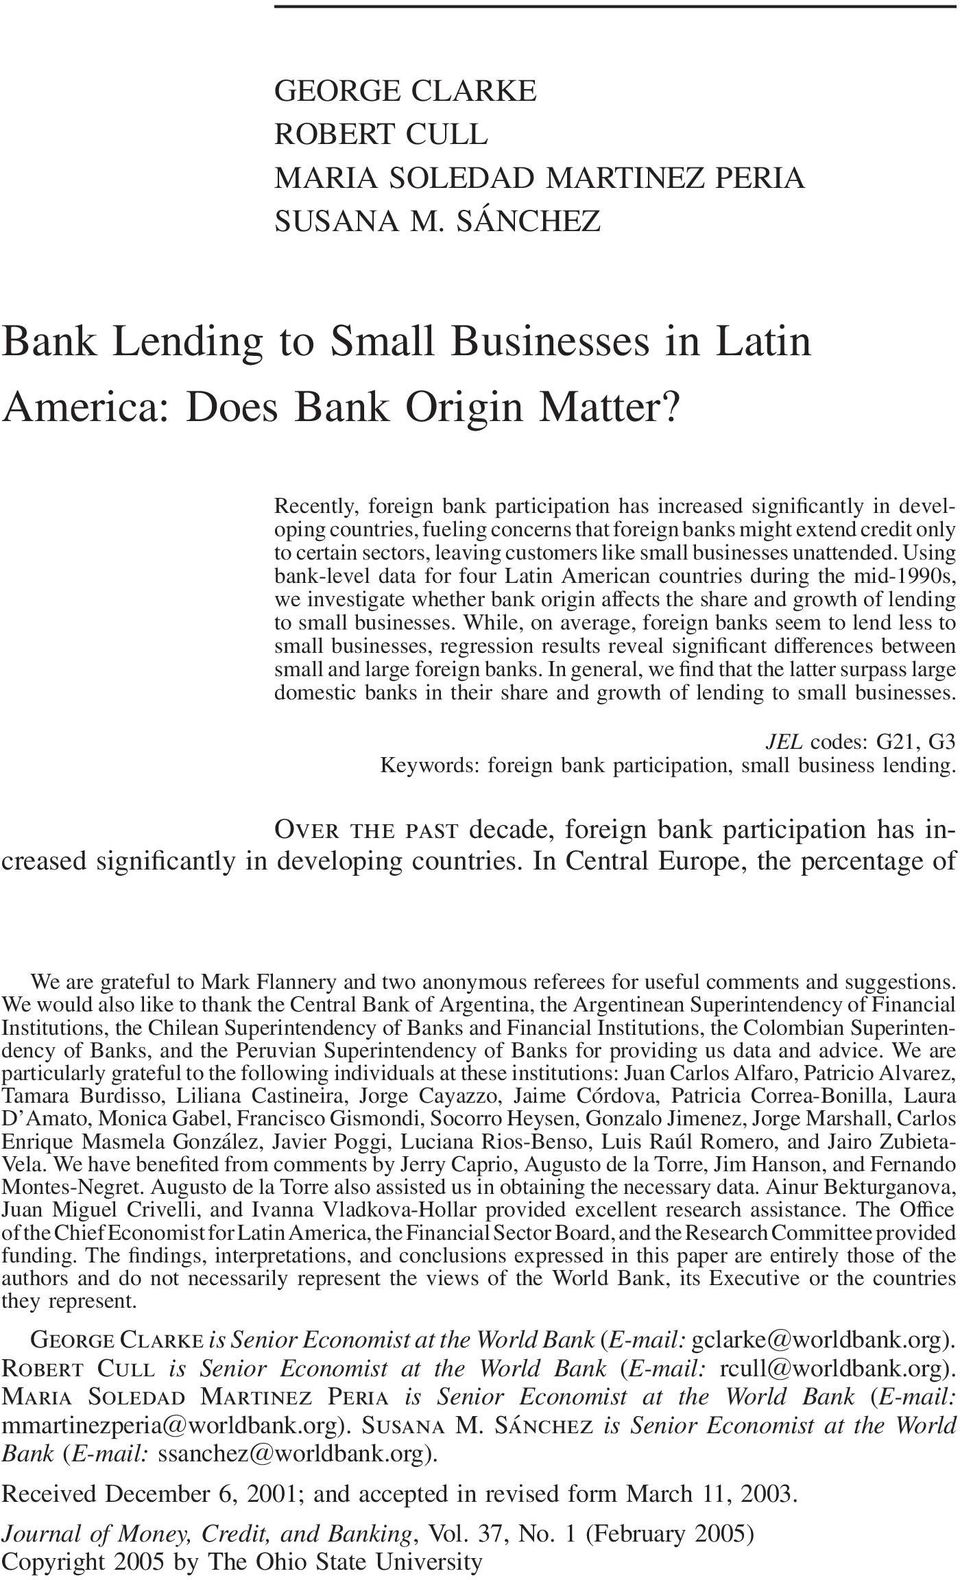 businesses unattended. Using bank-level data for four Latin American countries during the mid-1990s, we investigate whether bank origin affects the share and growth of lending to small businesses.